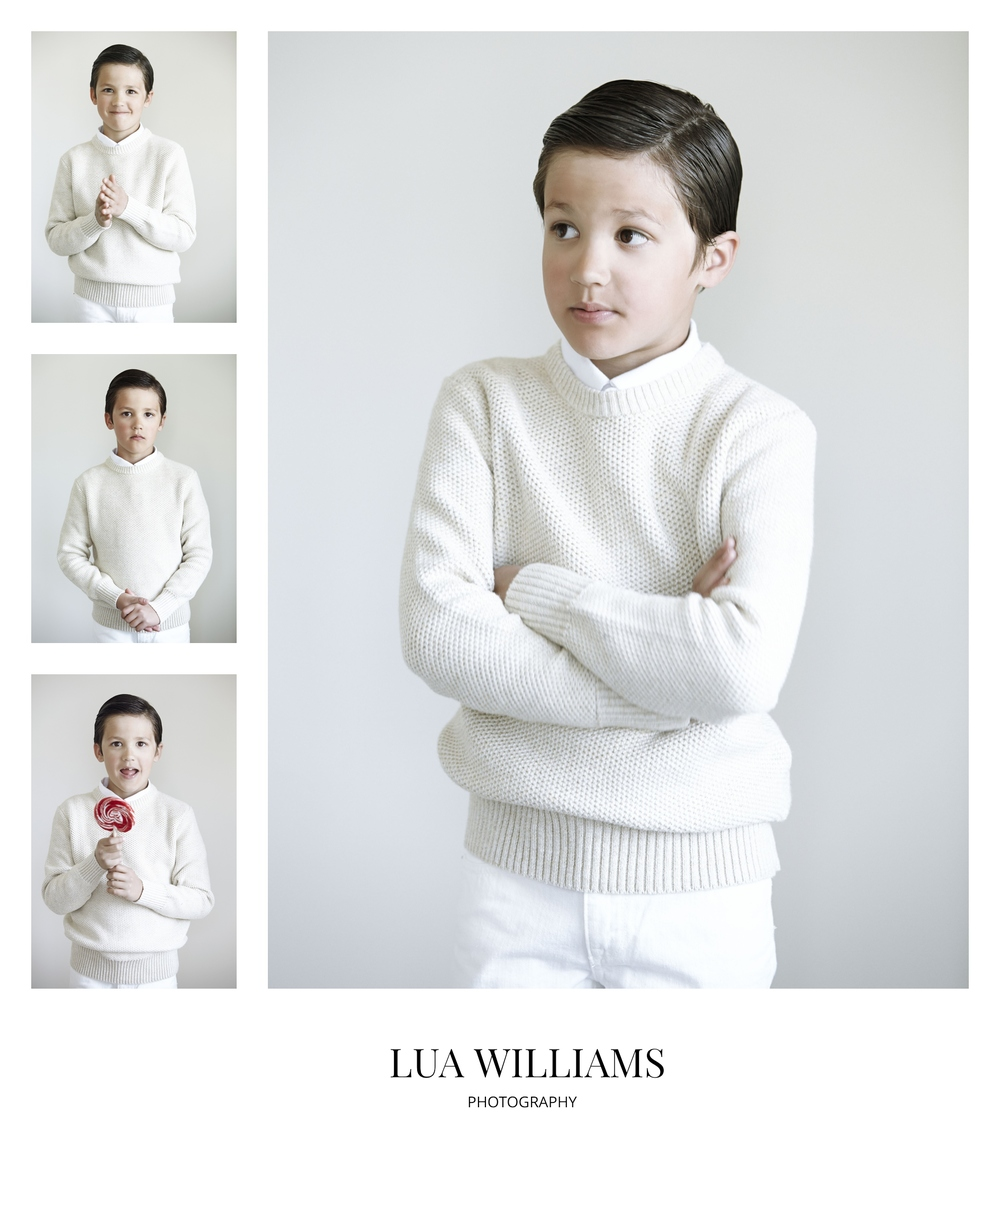 luawilliams.childrenphotography